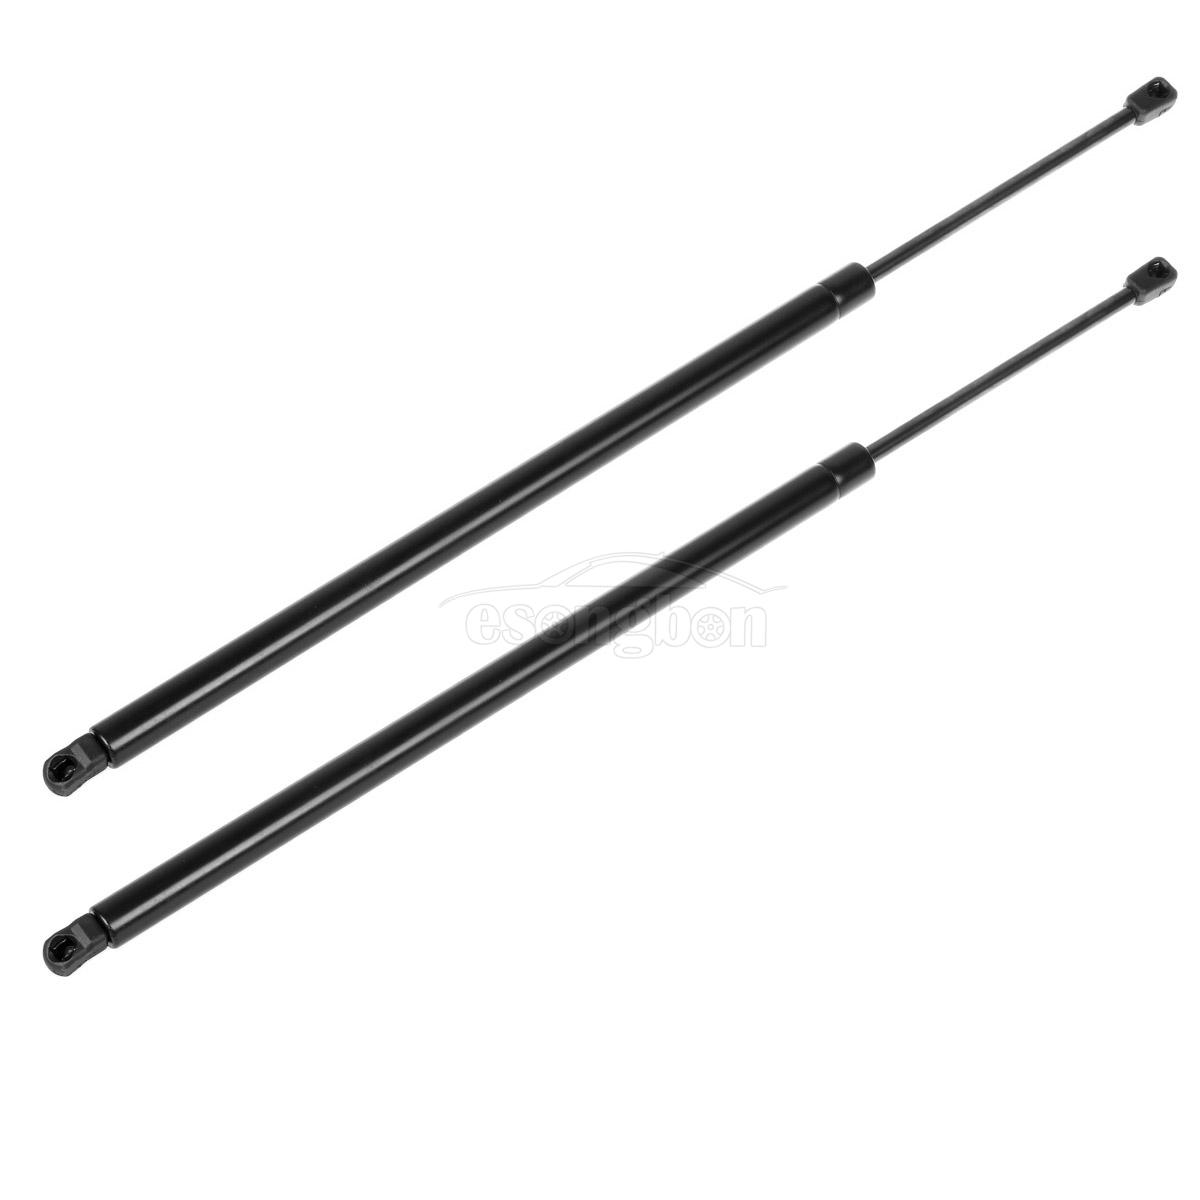 Qty 2 Tailgate Lift Supports Prop Shock Damper Gas Spring